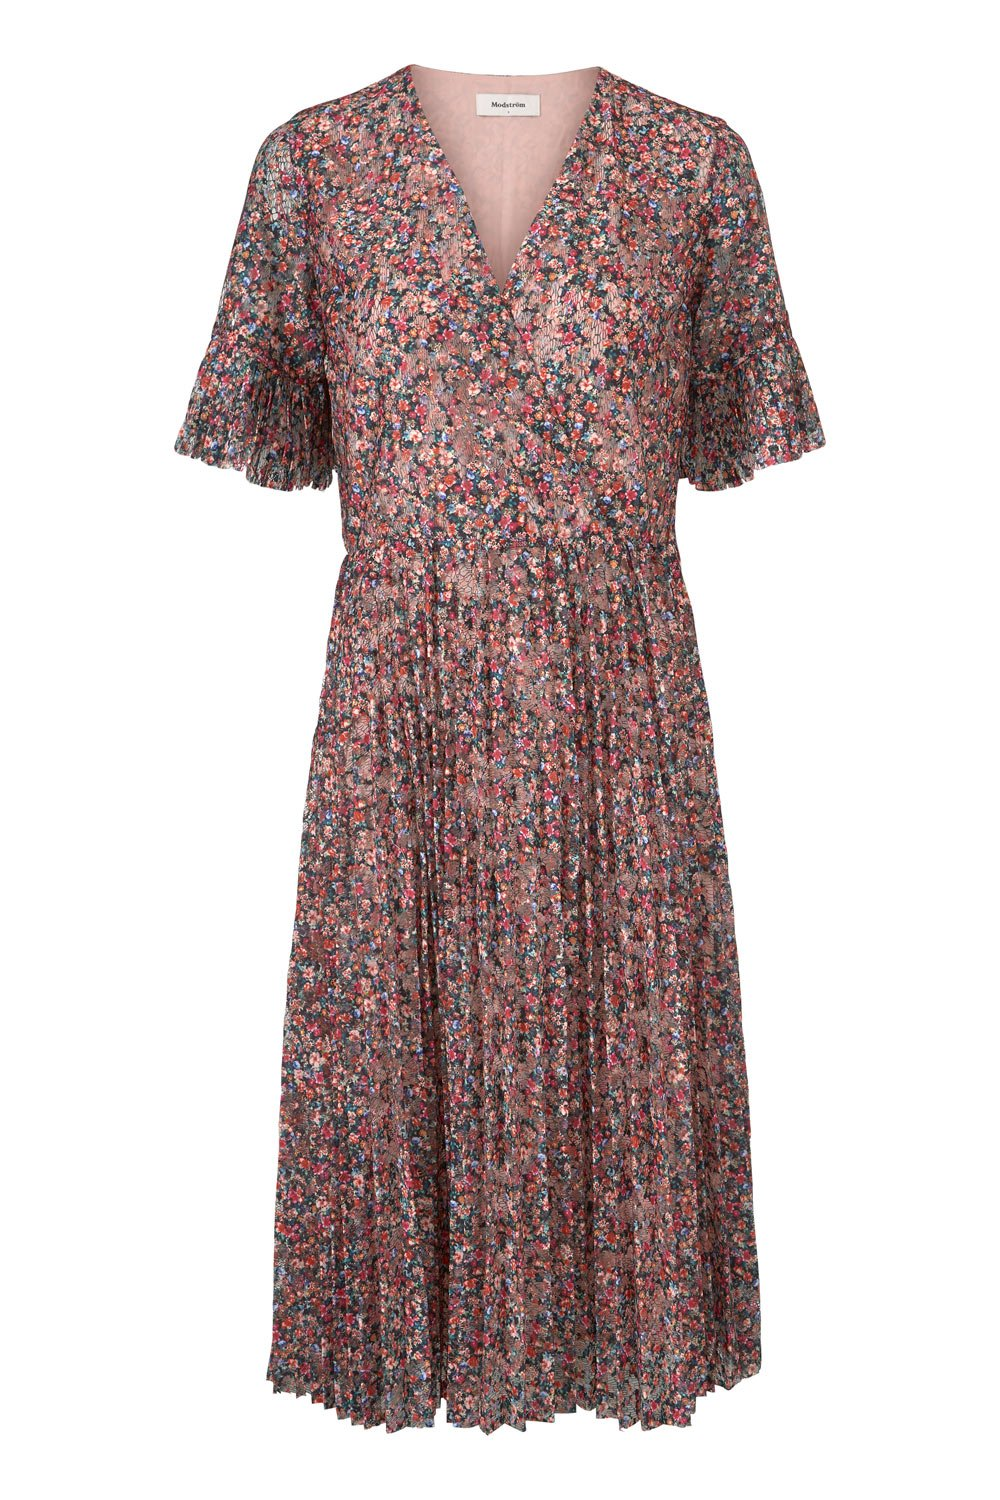 Nabiha Print Dress - Flower Bomb